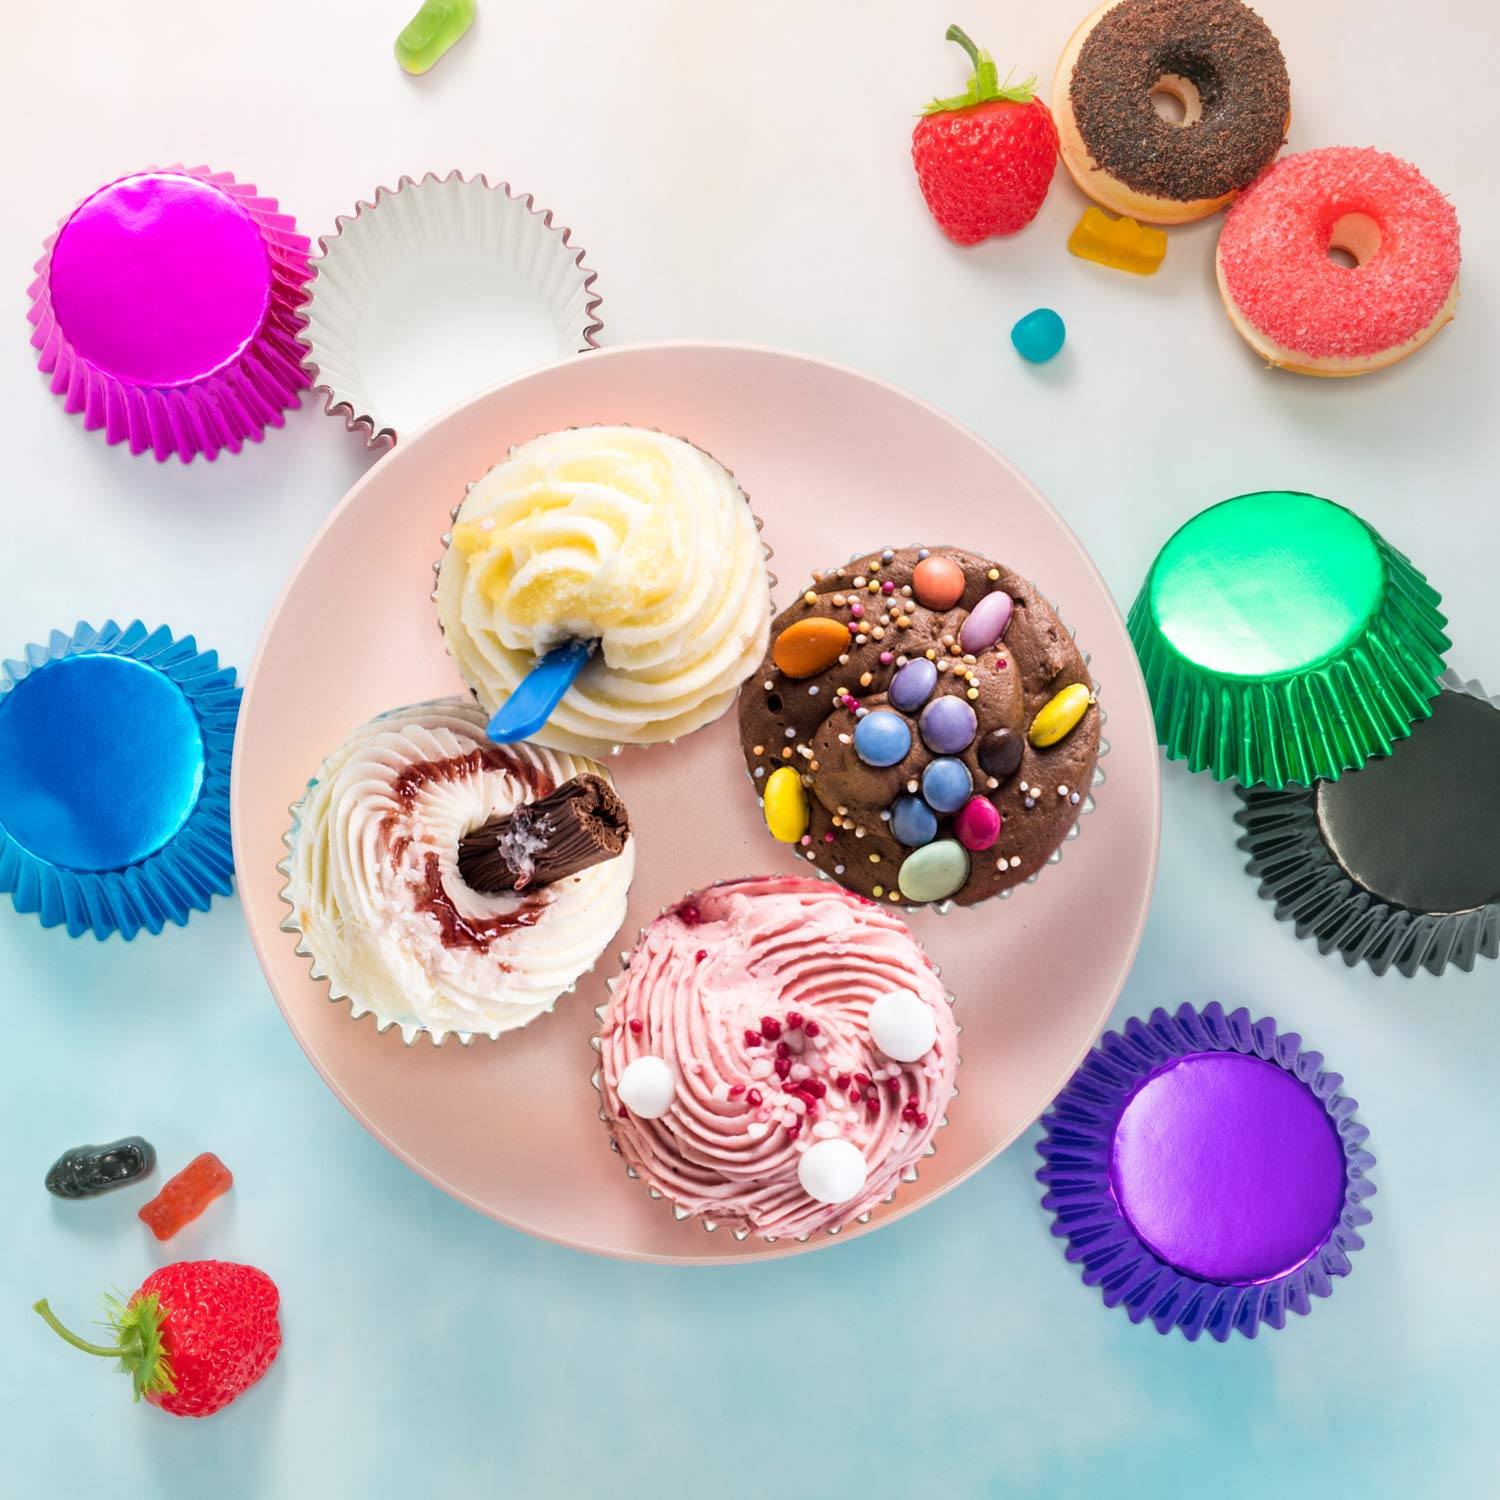 Sumind 10 Colors Paper Baking Cups Foil Cupcake Liners Muffin Case Decoration Cups (400 Pieces) by Sumind (Image #7)